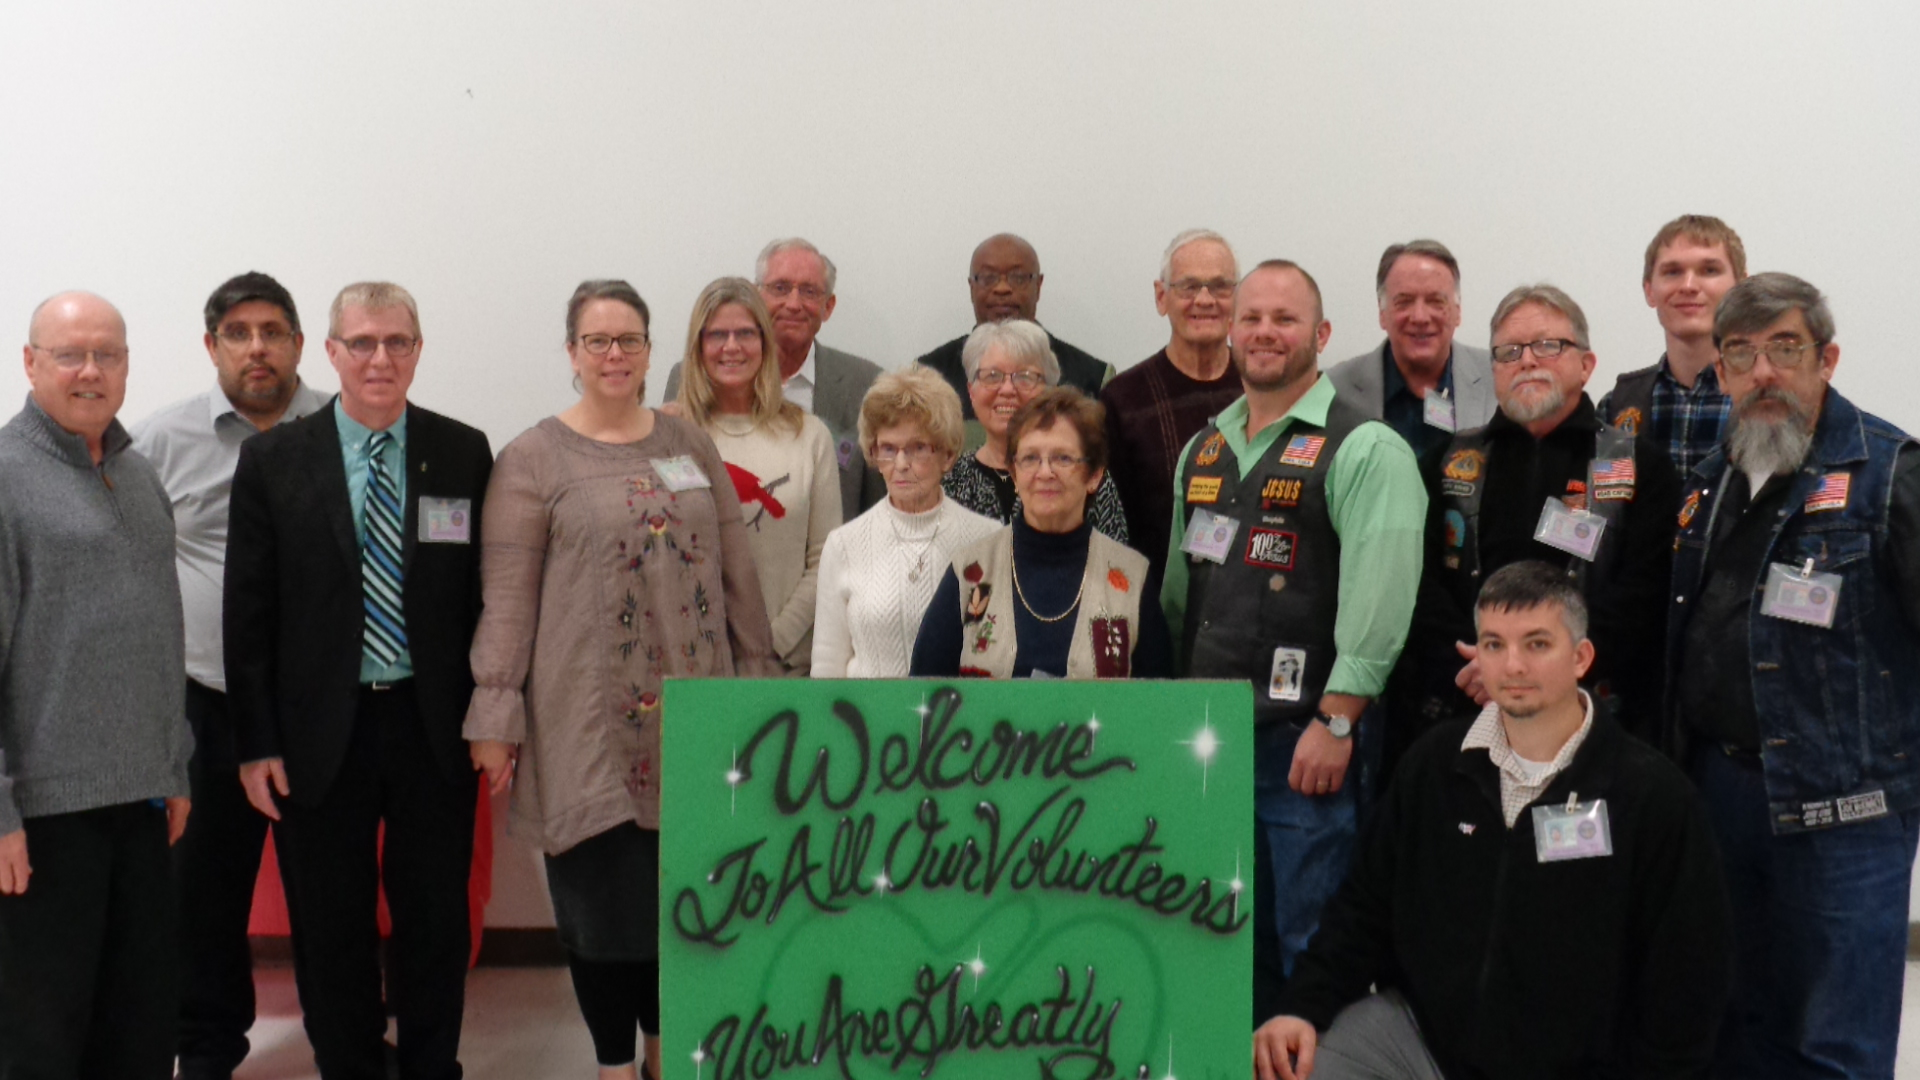 Noble Correctional Institution Recognizes their Volunteers